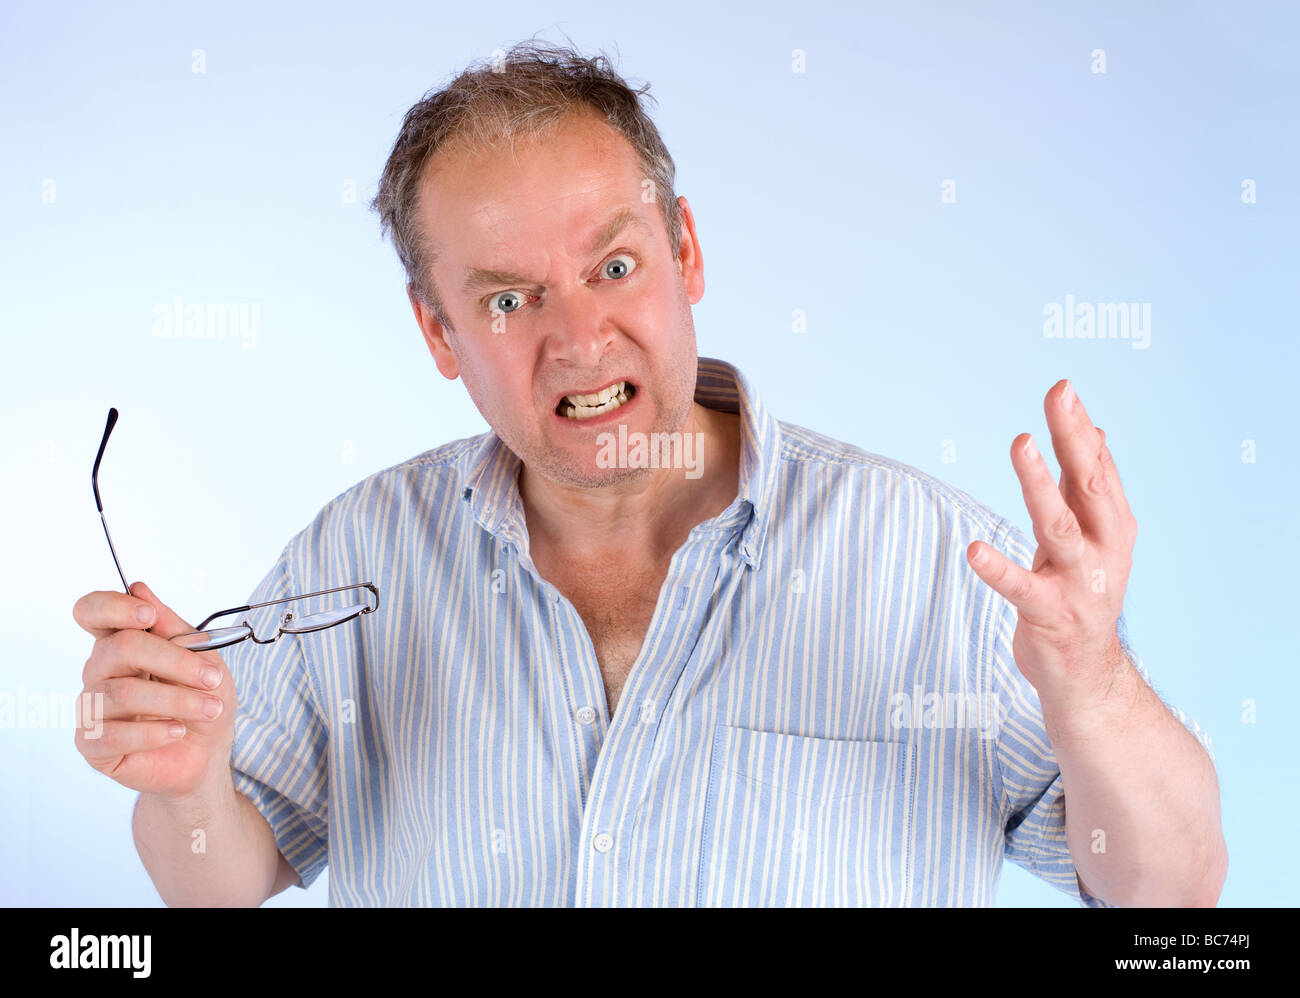 A man is showing his anger about something - Stock Image